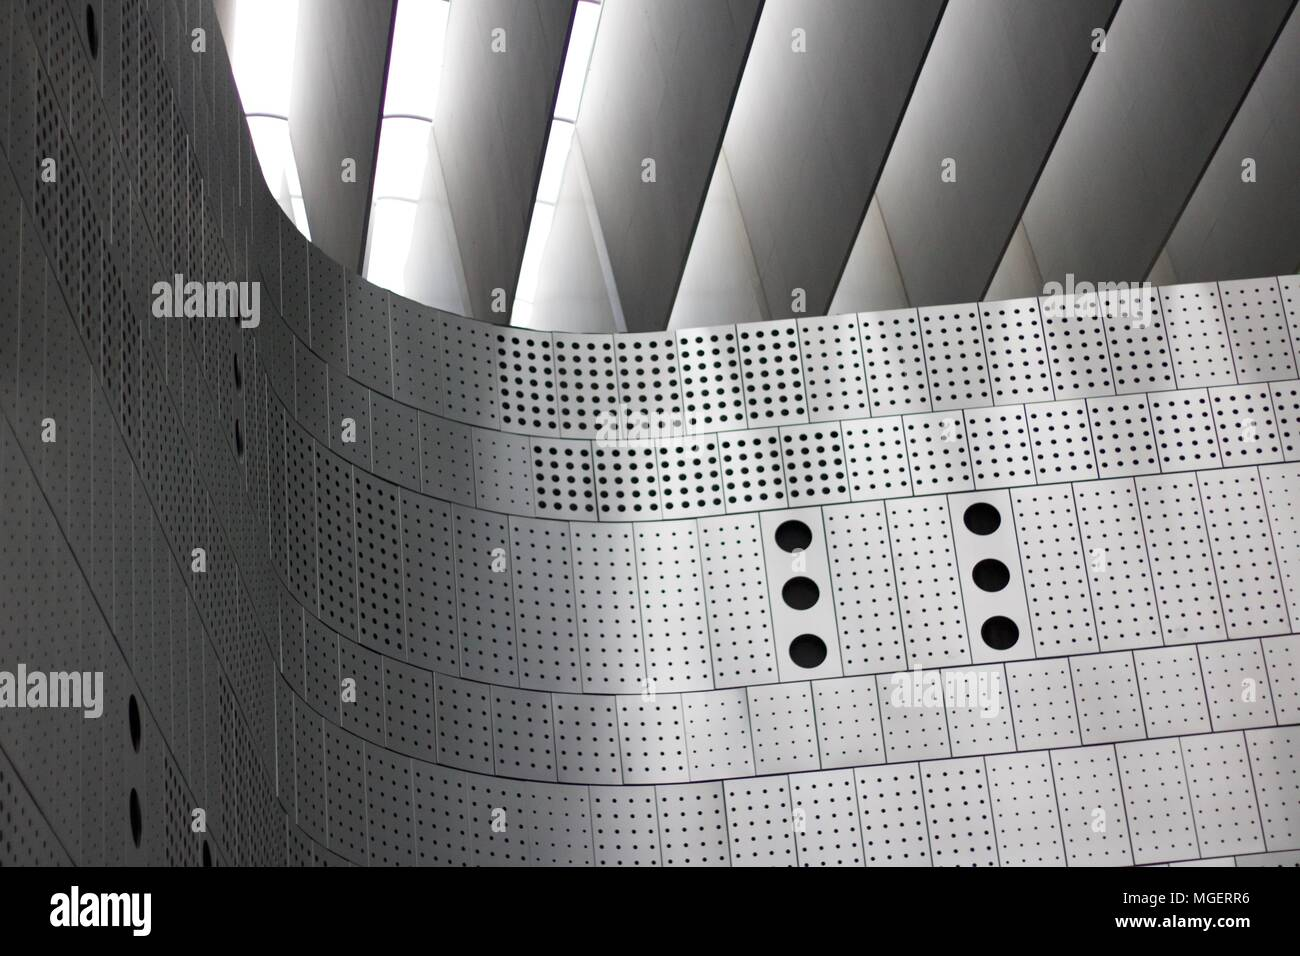 Photograph of a wall made of perforated metal panels with holes of different sizes - Stock Image